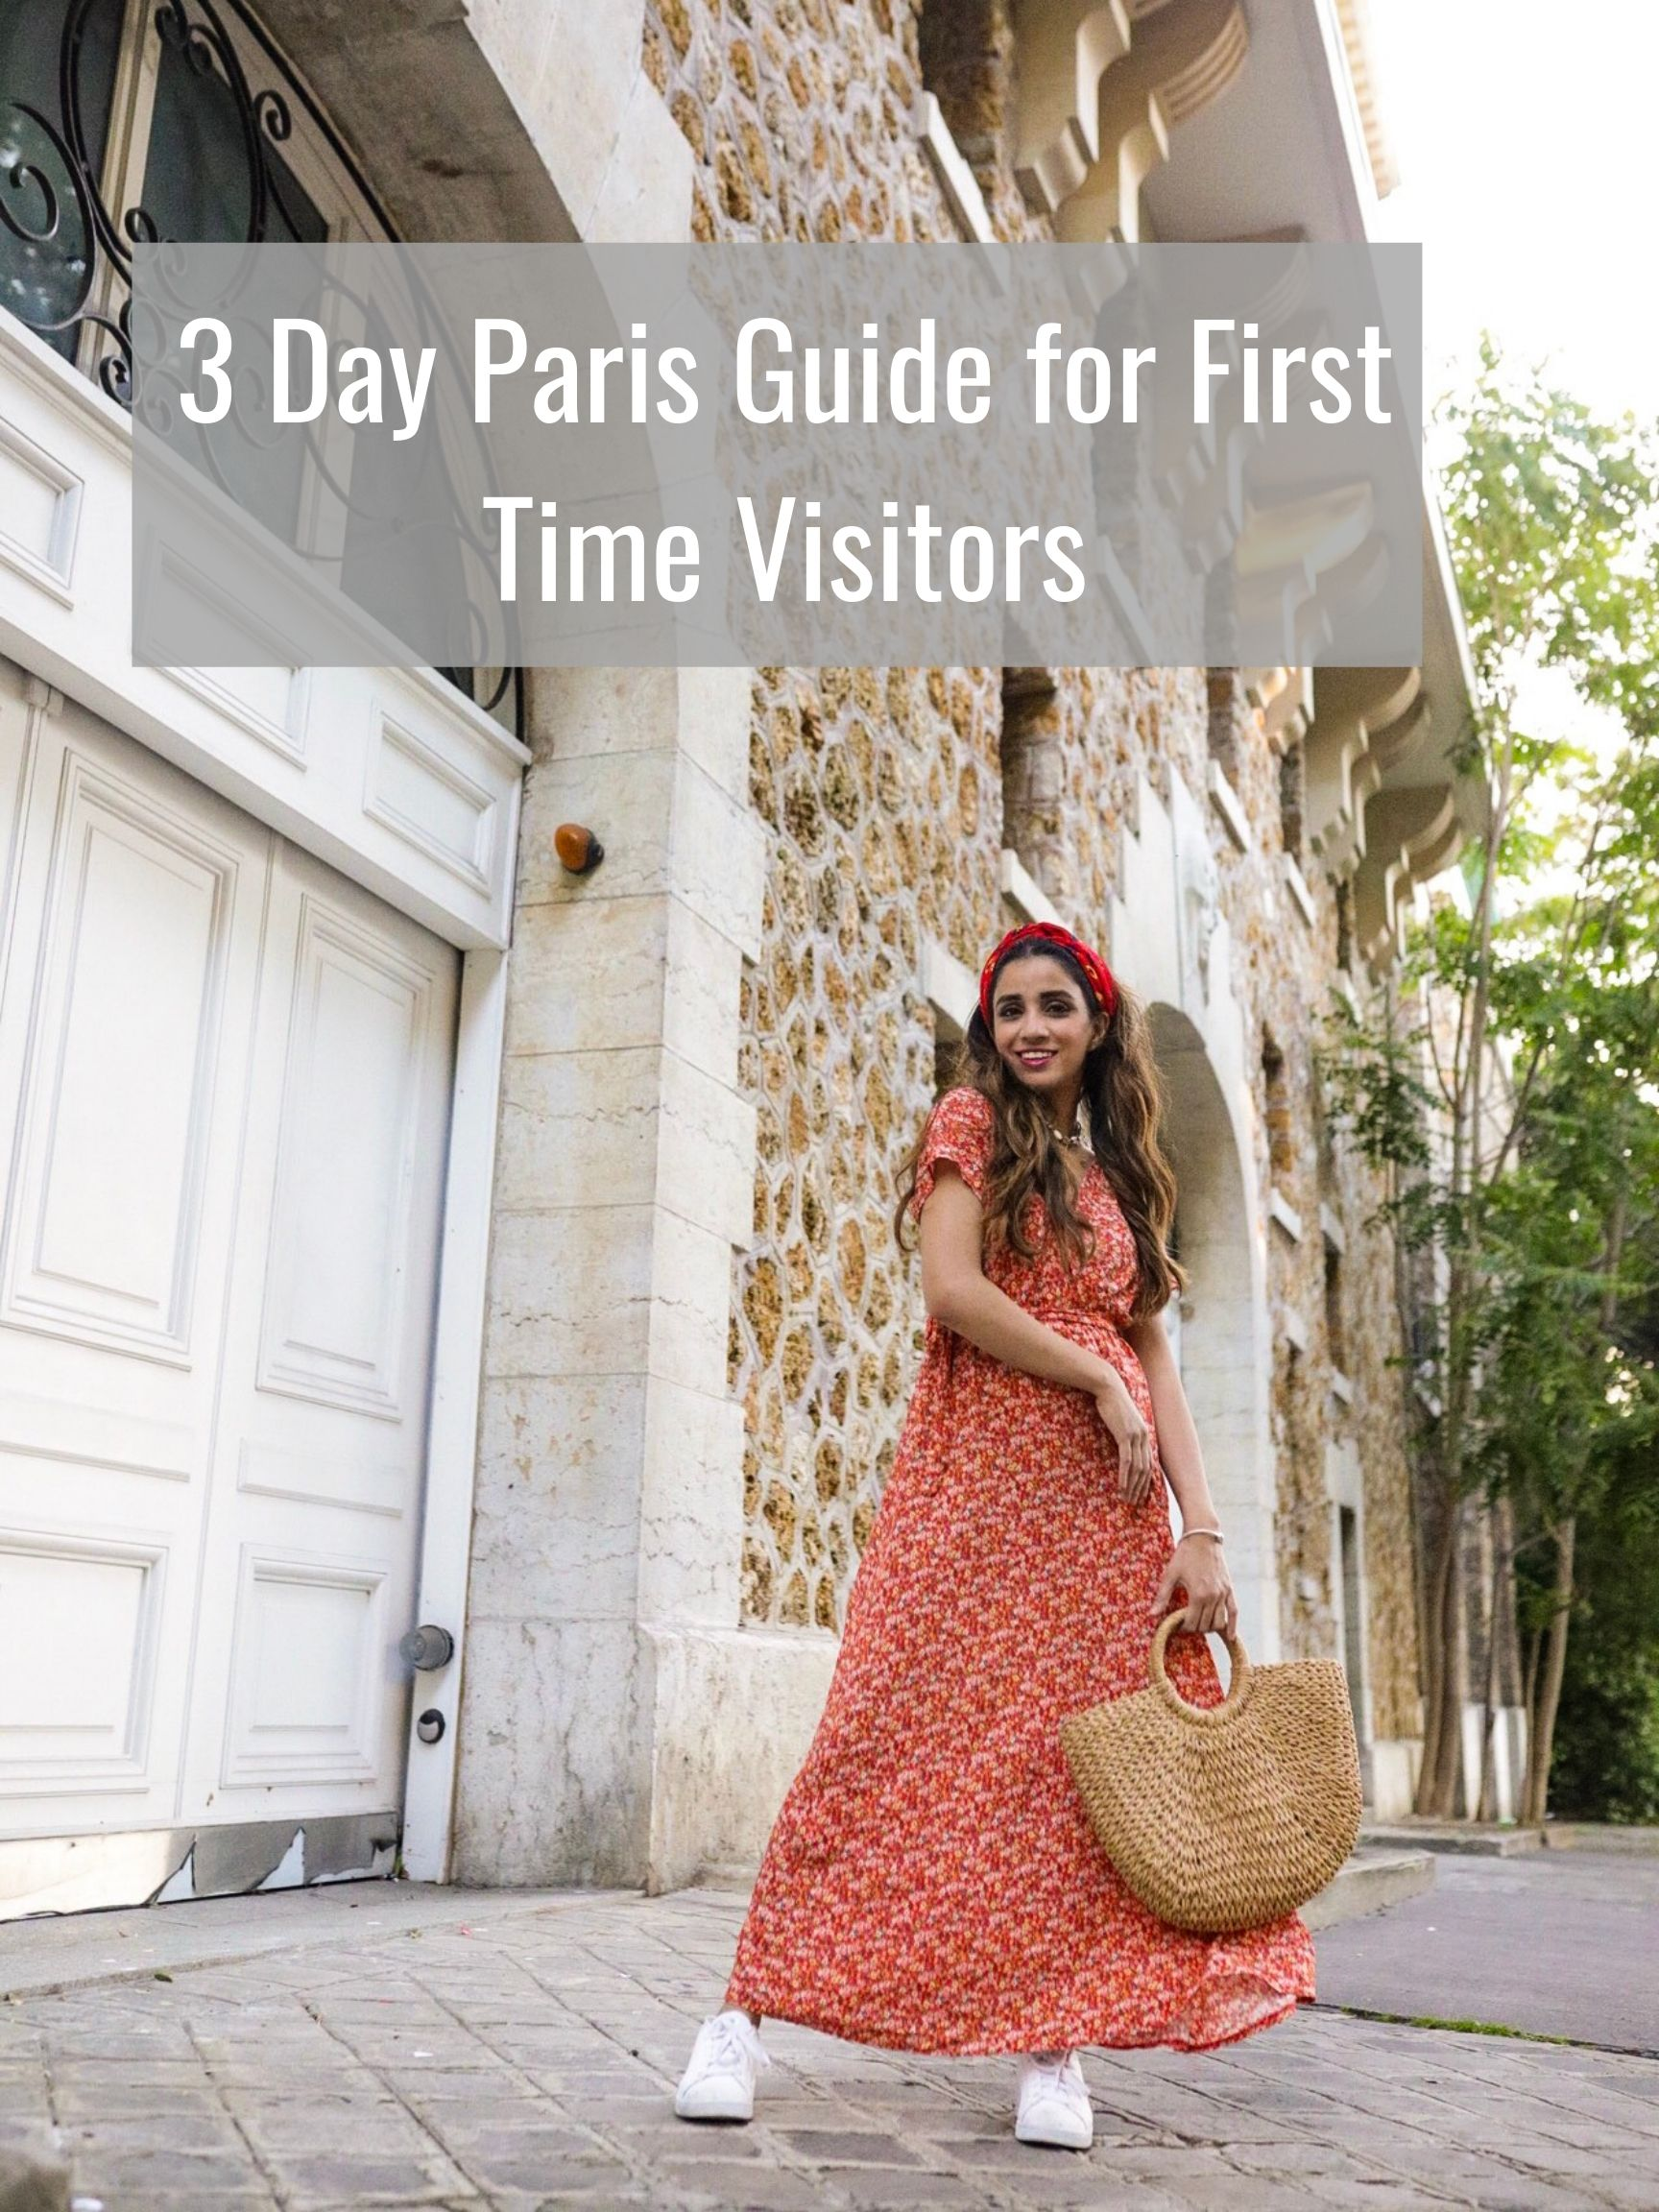 3 Day Paris Guide for First Time Visitors Faiza Inam Sincerely Humble tour tourist visitor effiel tower e Louvre tourist attractions visit